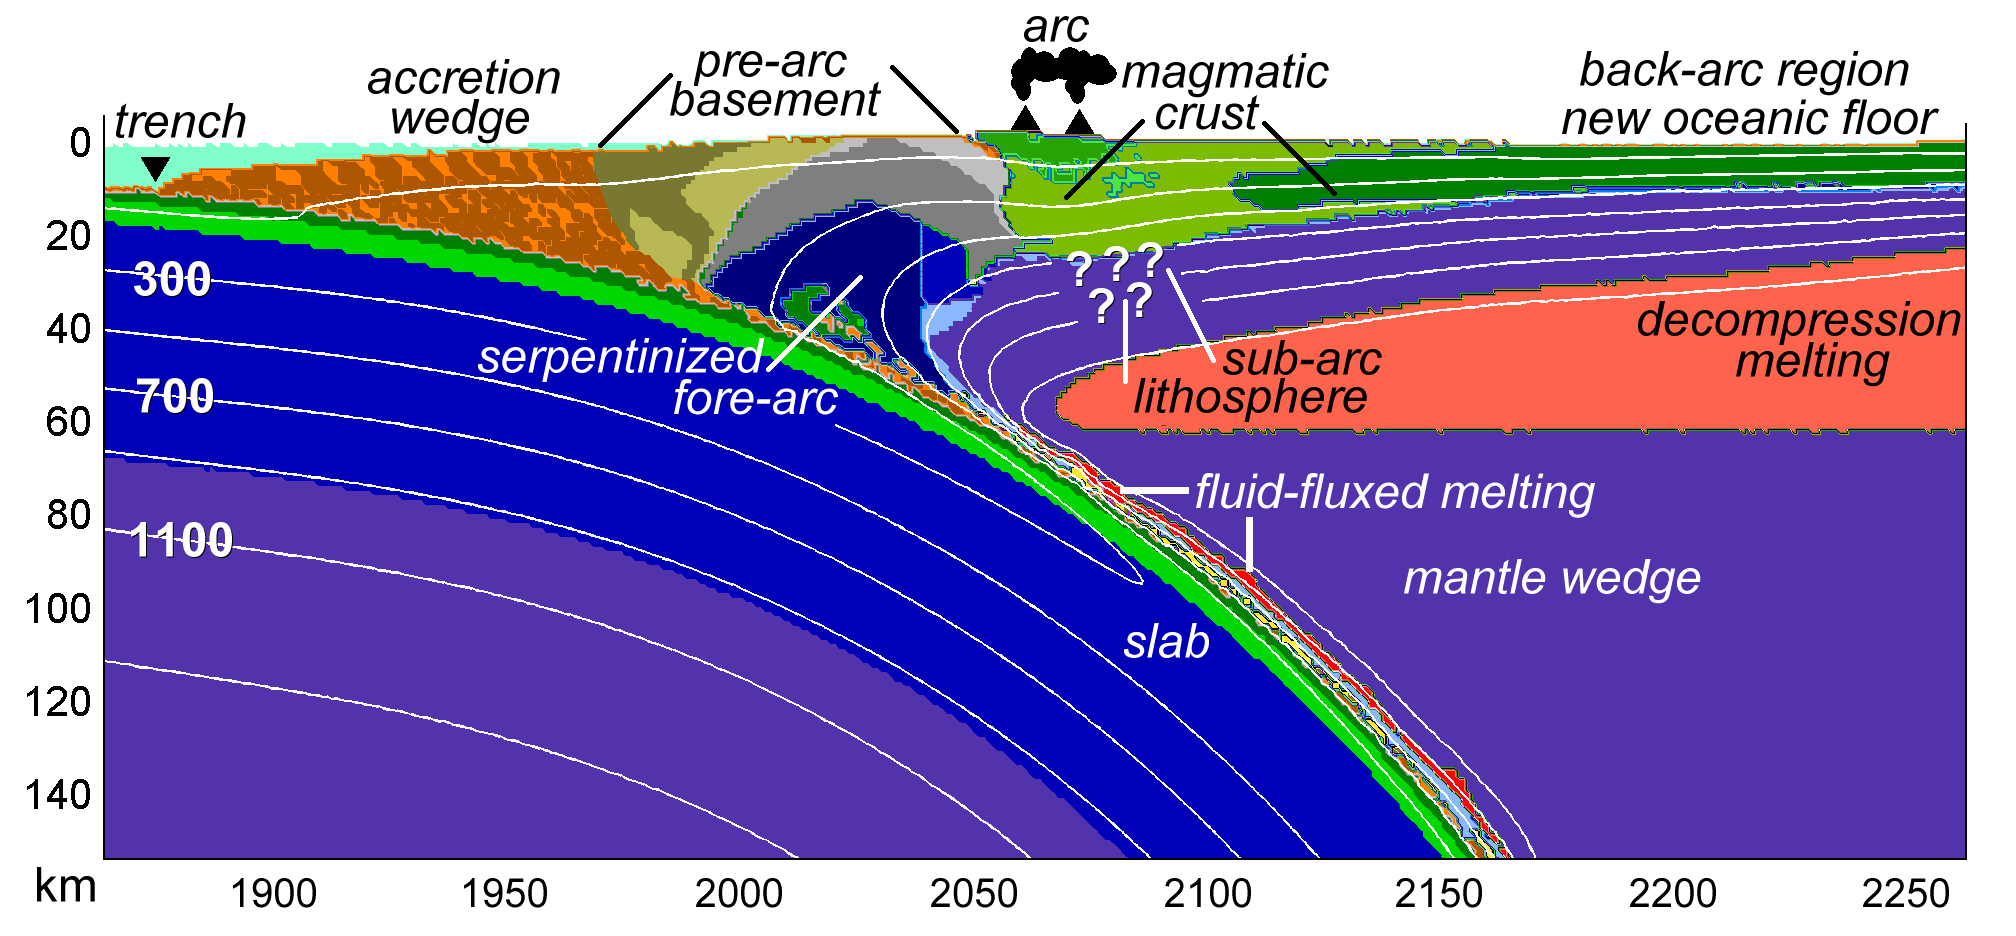 How To Model Tectonic Plates And Subduction Zones